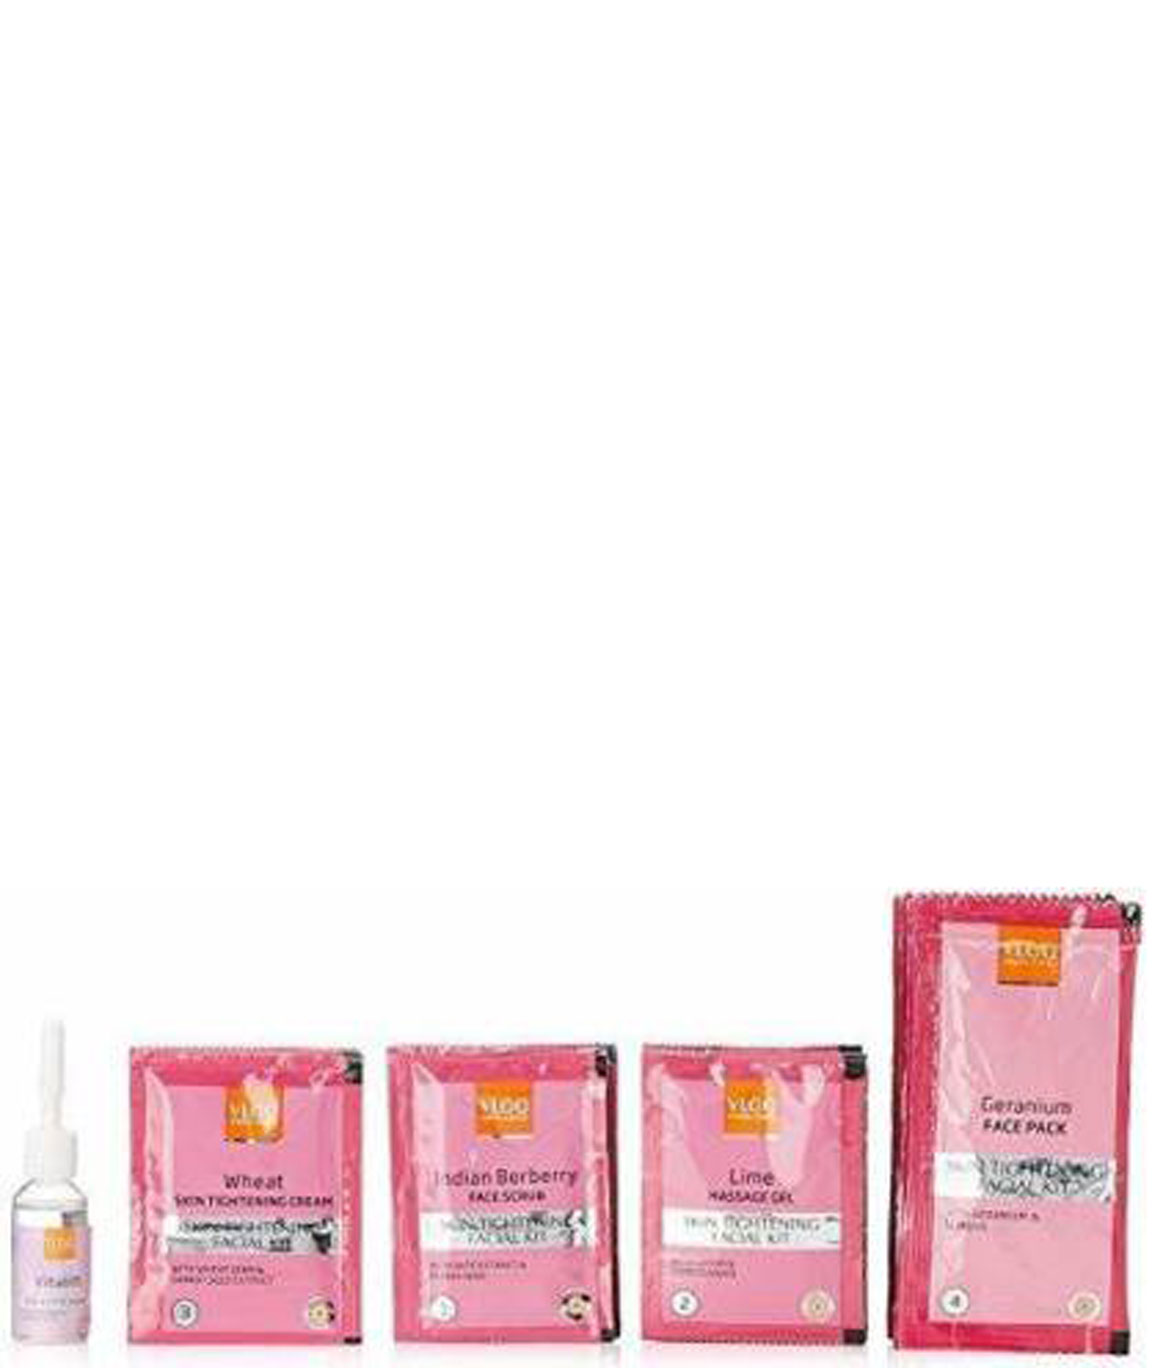 VLCC Skin Tightening Facial Kit Free 1 Additional Session Sachet Inside The Pack